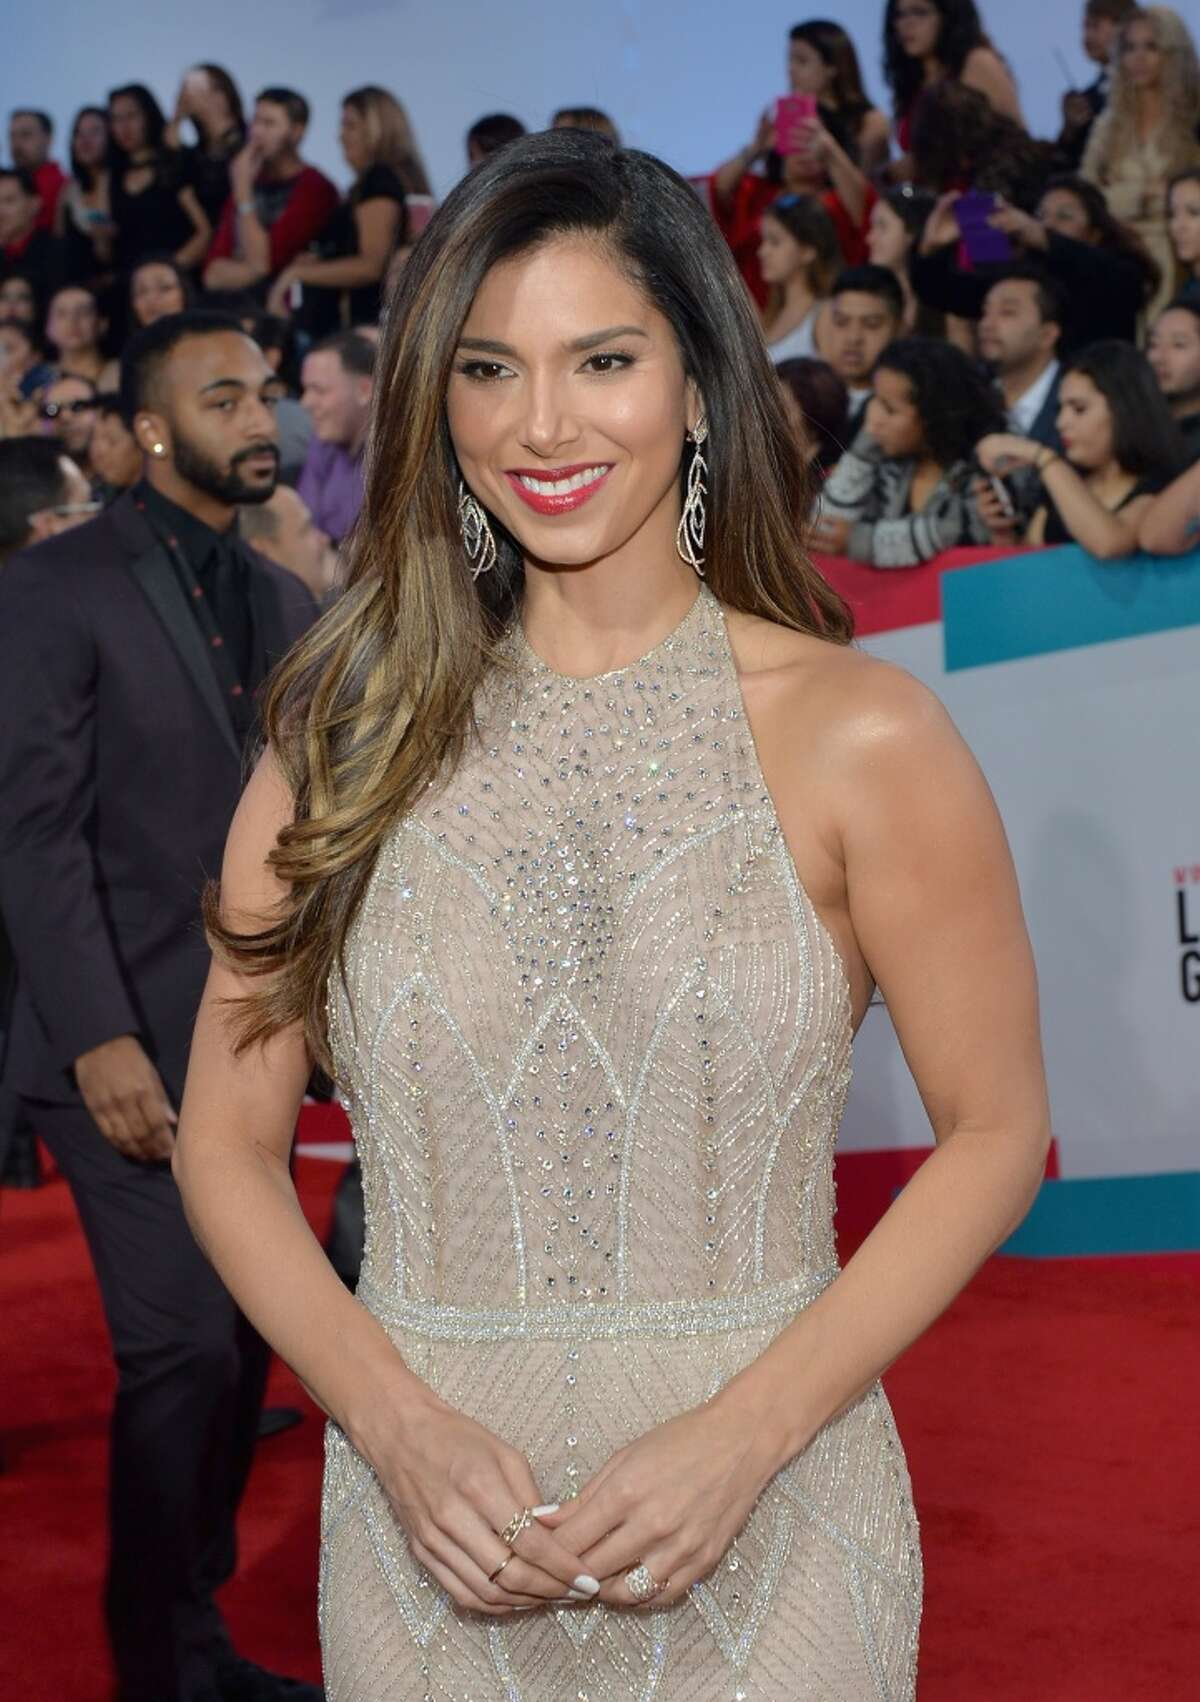 LAS VEGAS, NV - NOVEMBER 19: Singer/actress Roselyn Sanchez attends the 16th Latin GRAMMY Awards at the MGM Grand Garden Arena on November 19, 2015 in Las Vegas, Nevada. (Photo by Rodrigo Varela/WireImage)